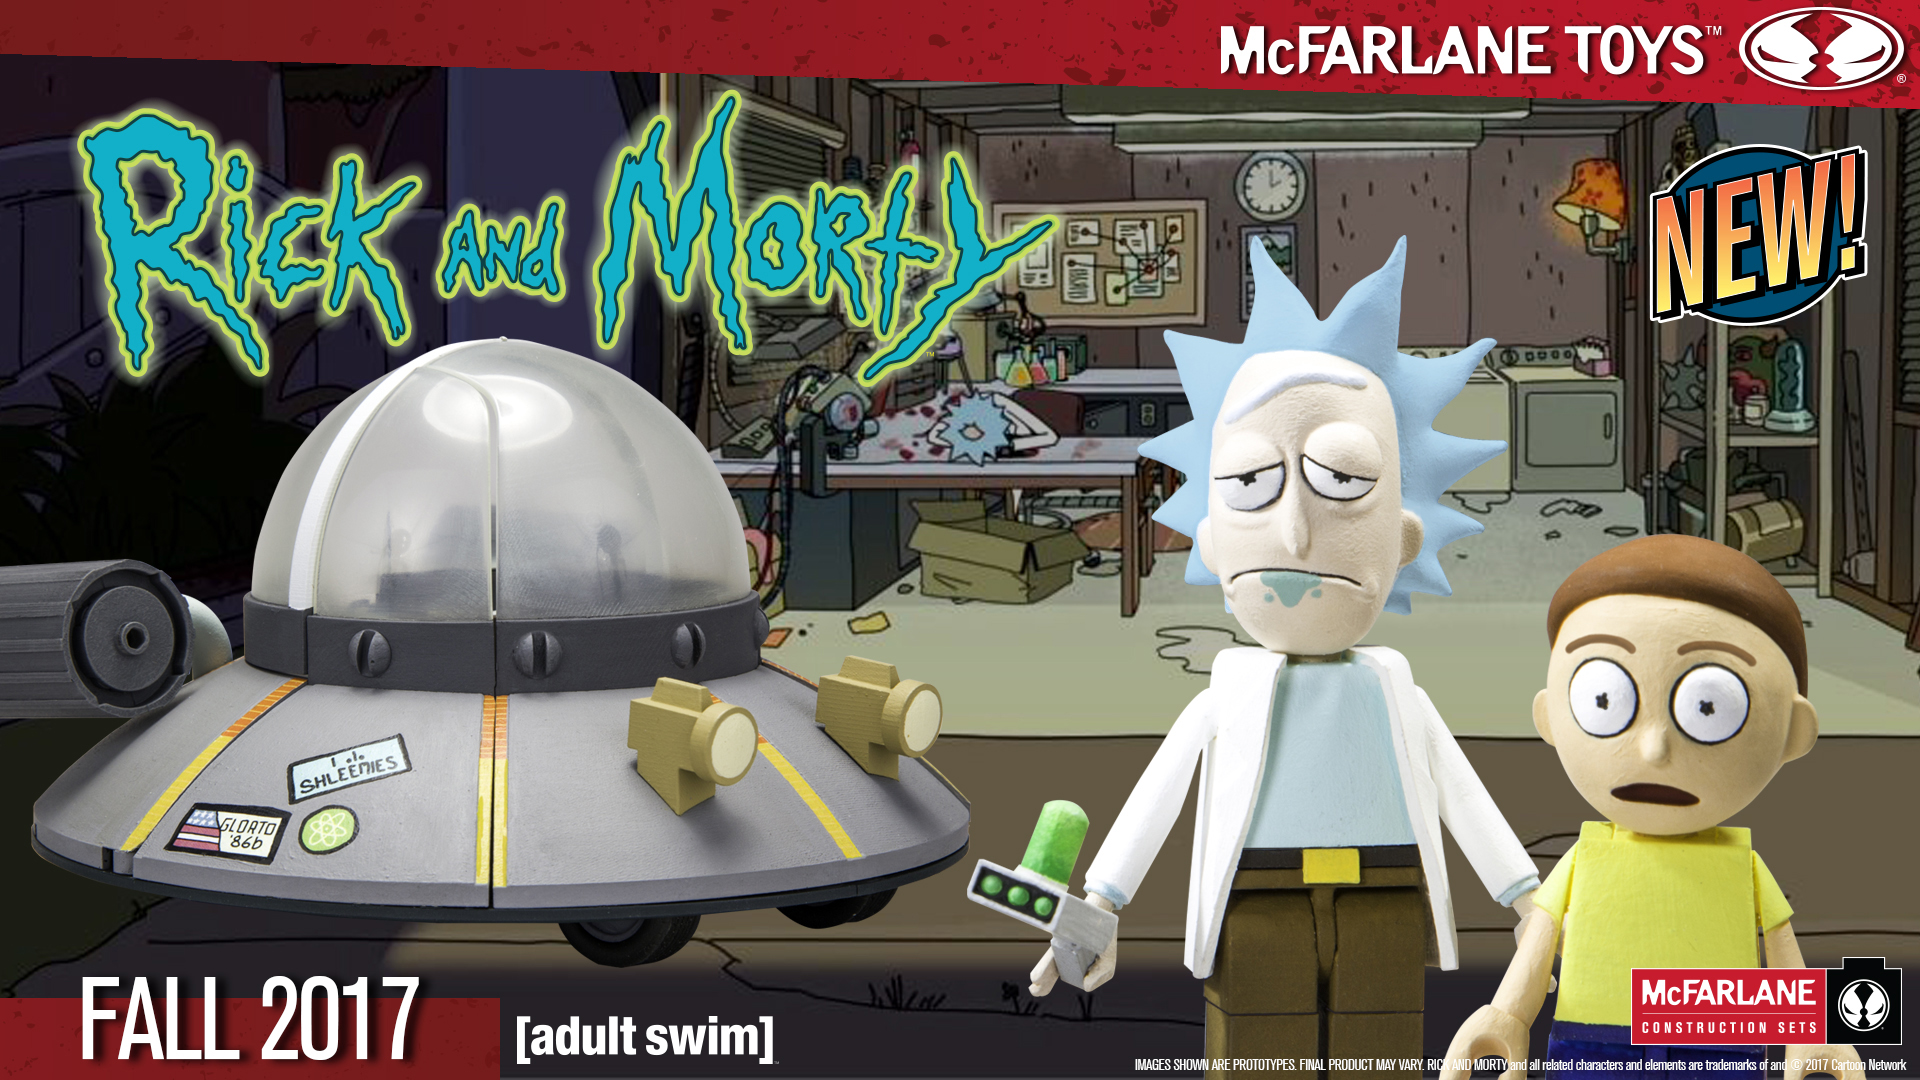 McFarlaneToys RICKMORTY